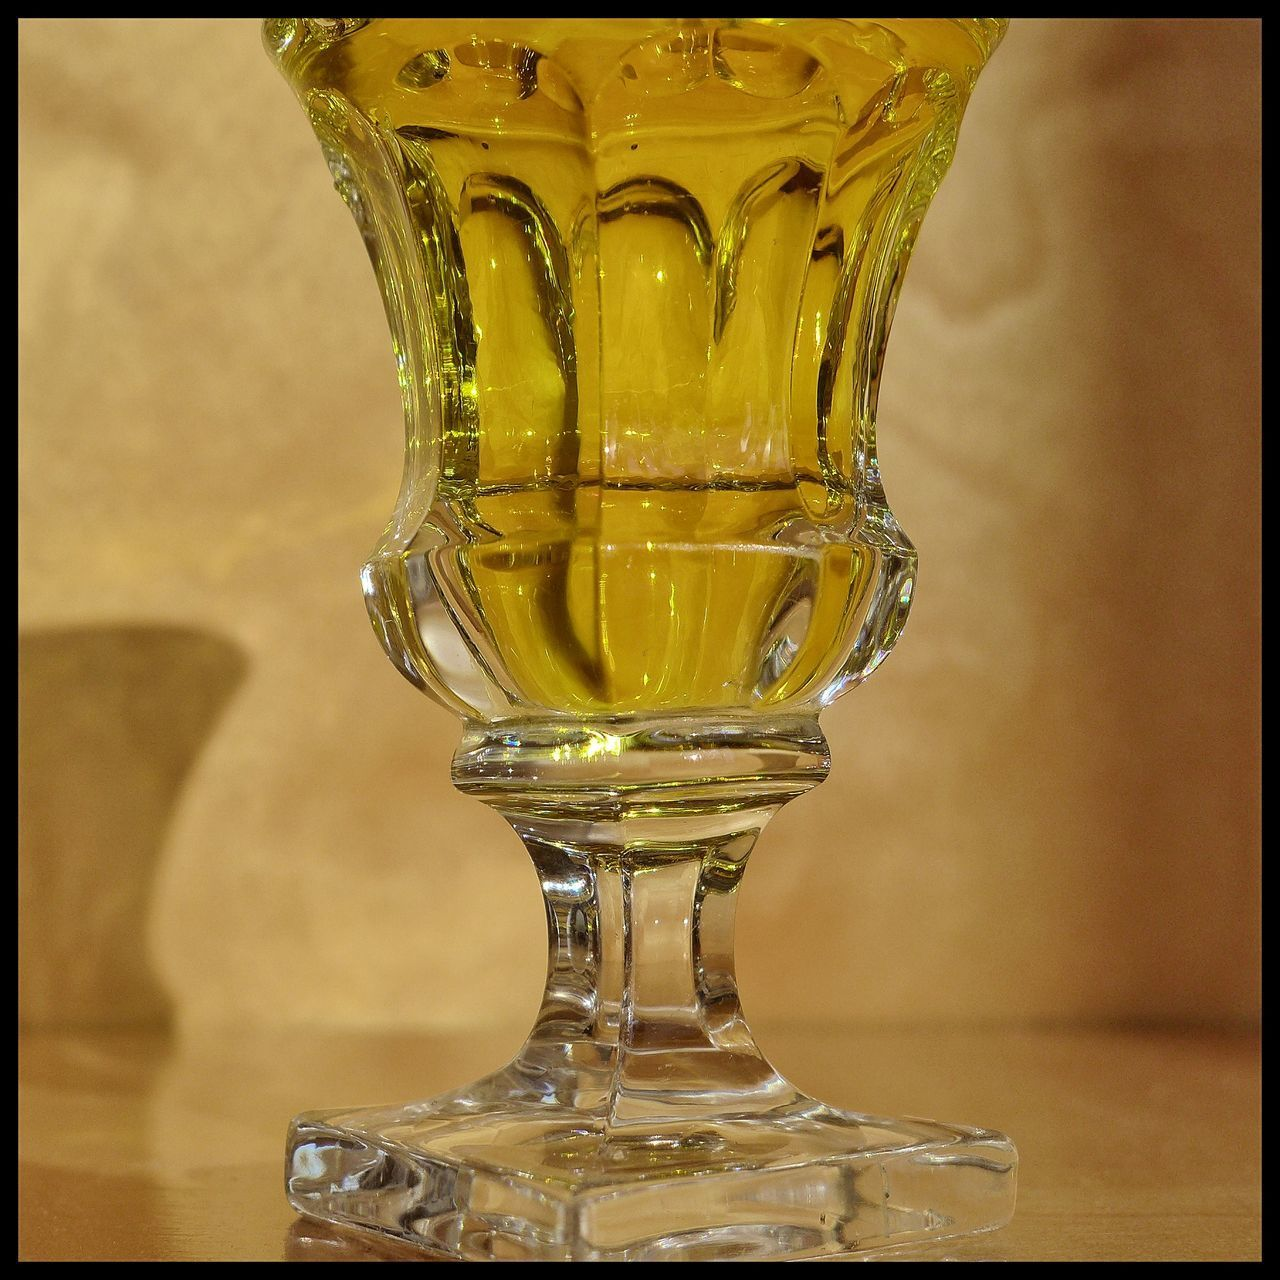 glass - material, auto post production filter, no people, close-up, indoors, transparent, table, transfer print, still life, food and drink, glass, drinking glass, focus on foreground, yellow, freshness, household equipment, food, single object, studio shot, ornate